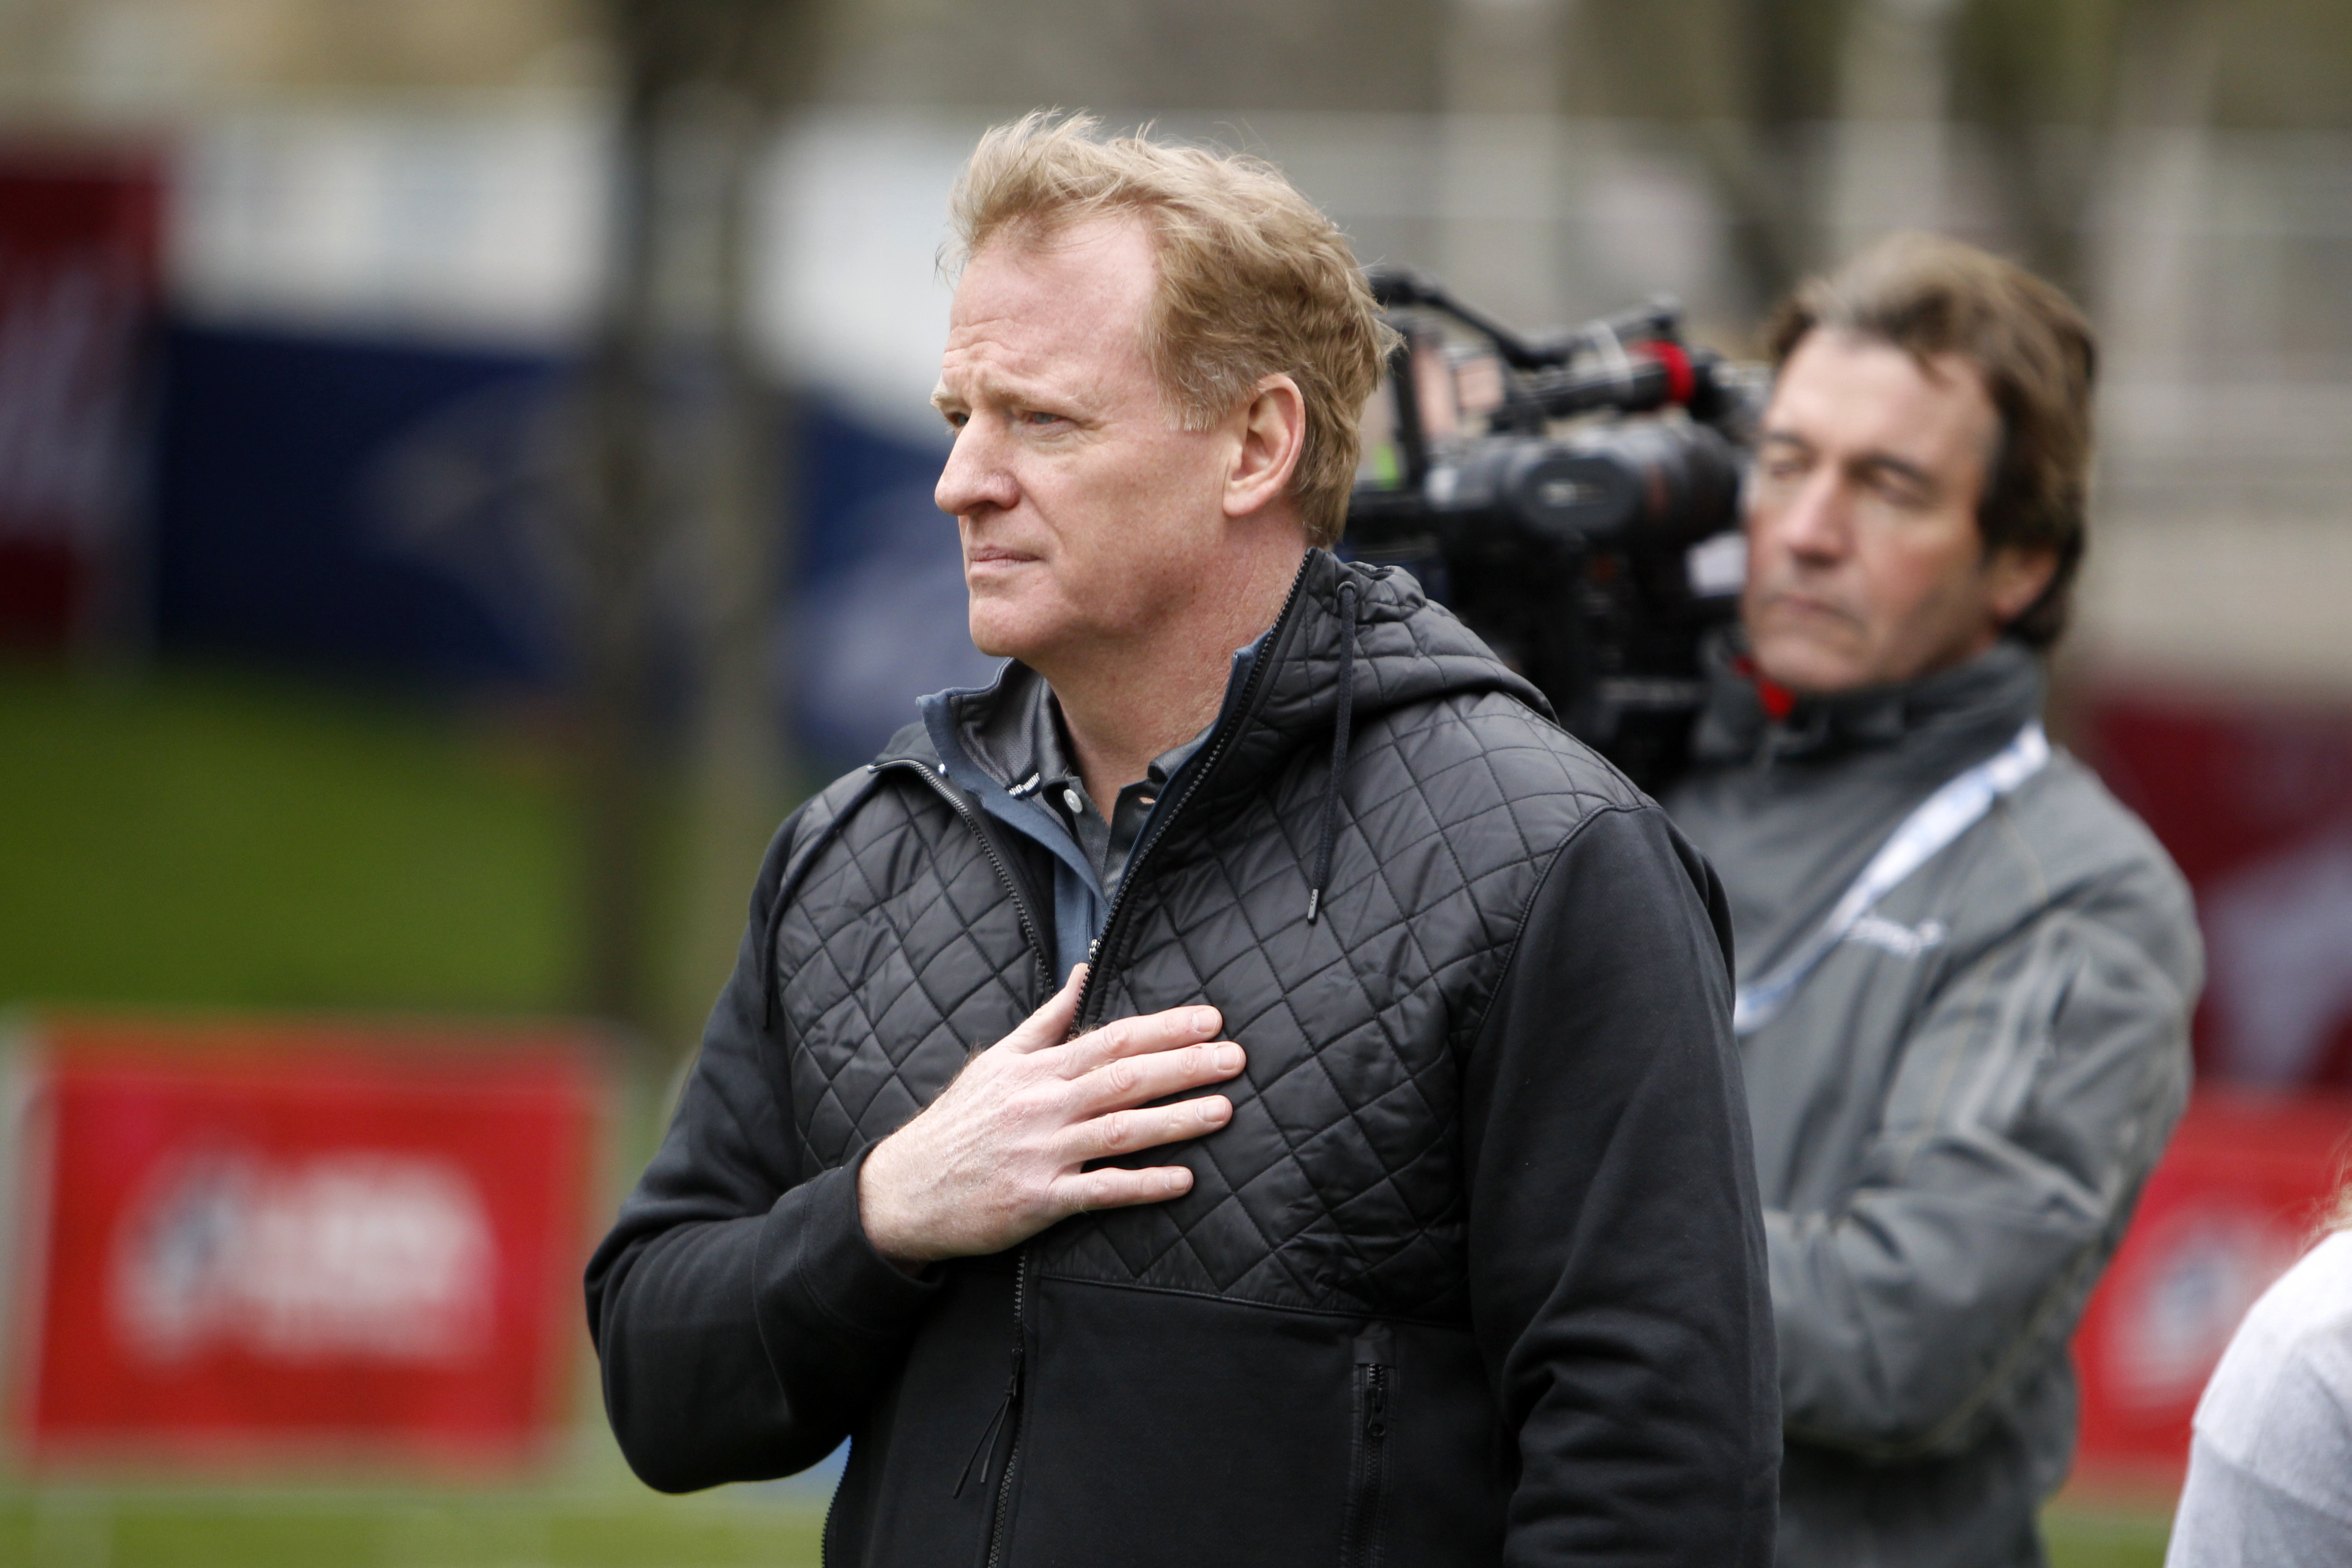 NFL Commissioner Roger Goodell pauses during the national anthem before an NFL Play 60 event at Grant Park, Wednesday, April 27, 2016, in Chicago before Thursday's first round of the NFL football draft. (AP Photo/Kiichiro Sato)